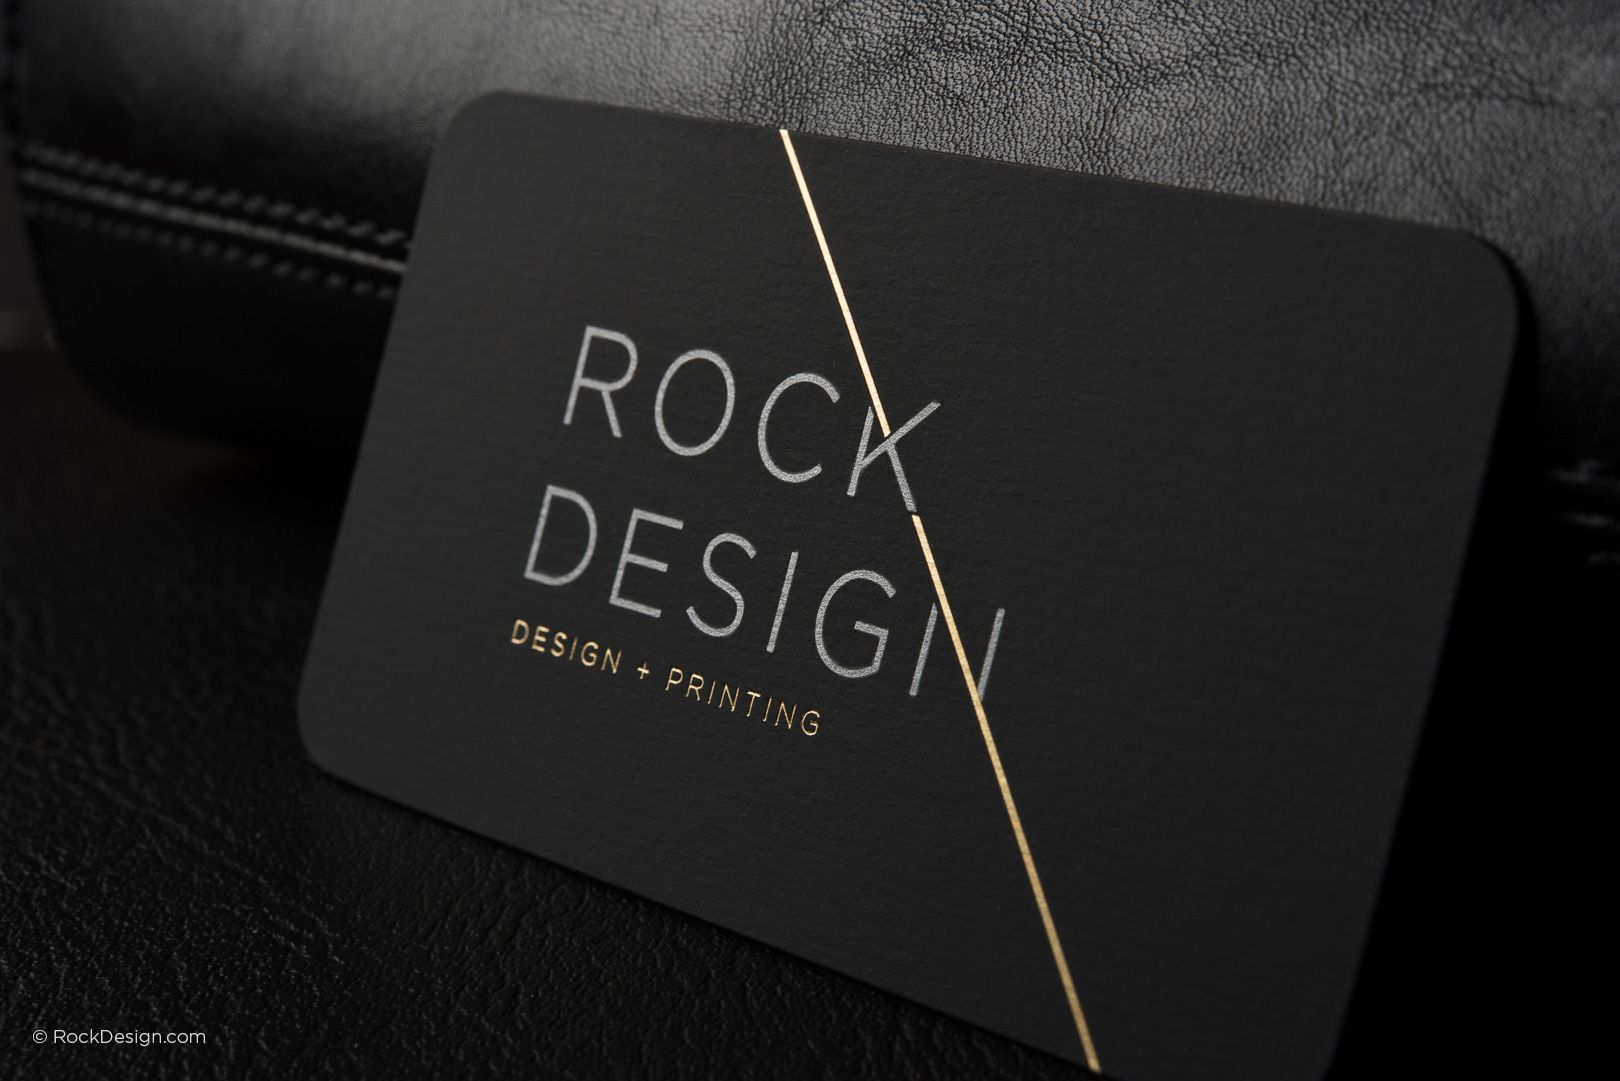 Luxury modern black suede business card with metallic ink and gold luxury modern black suede business card with metallic ink and gold foil rock design rockdesign luxury business card printing colourmoves